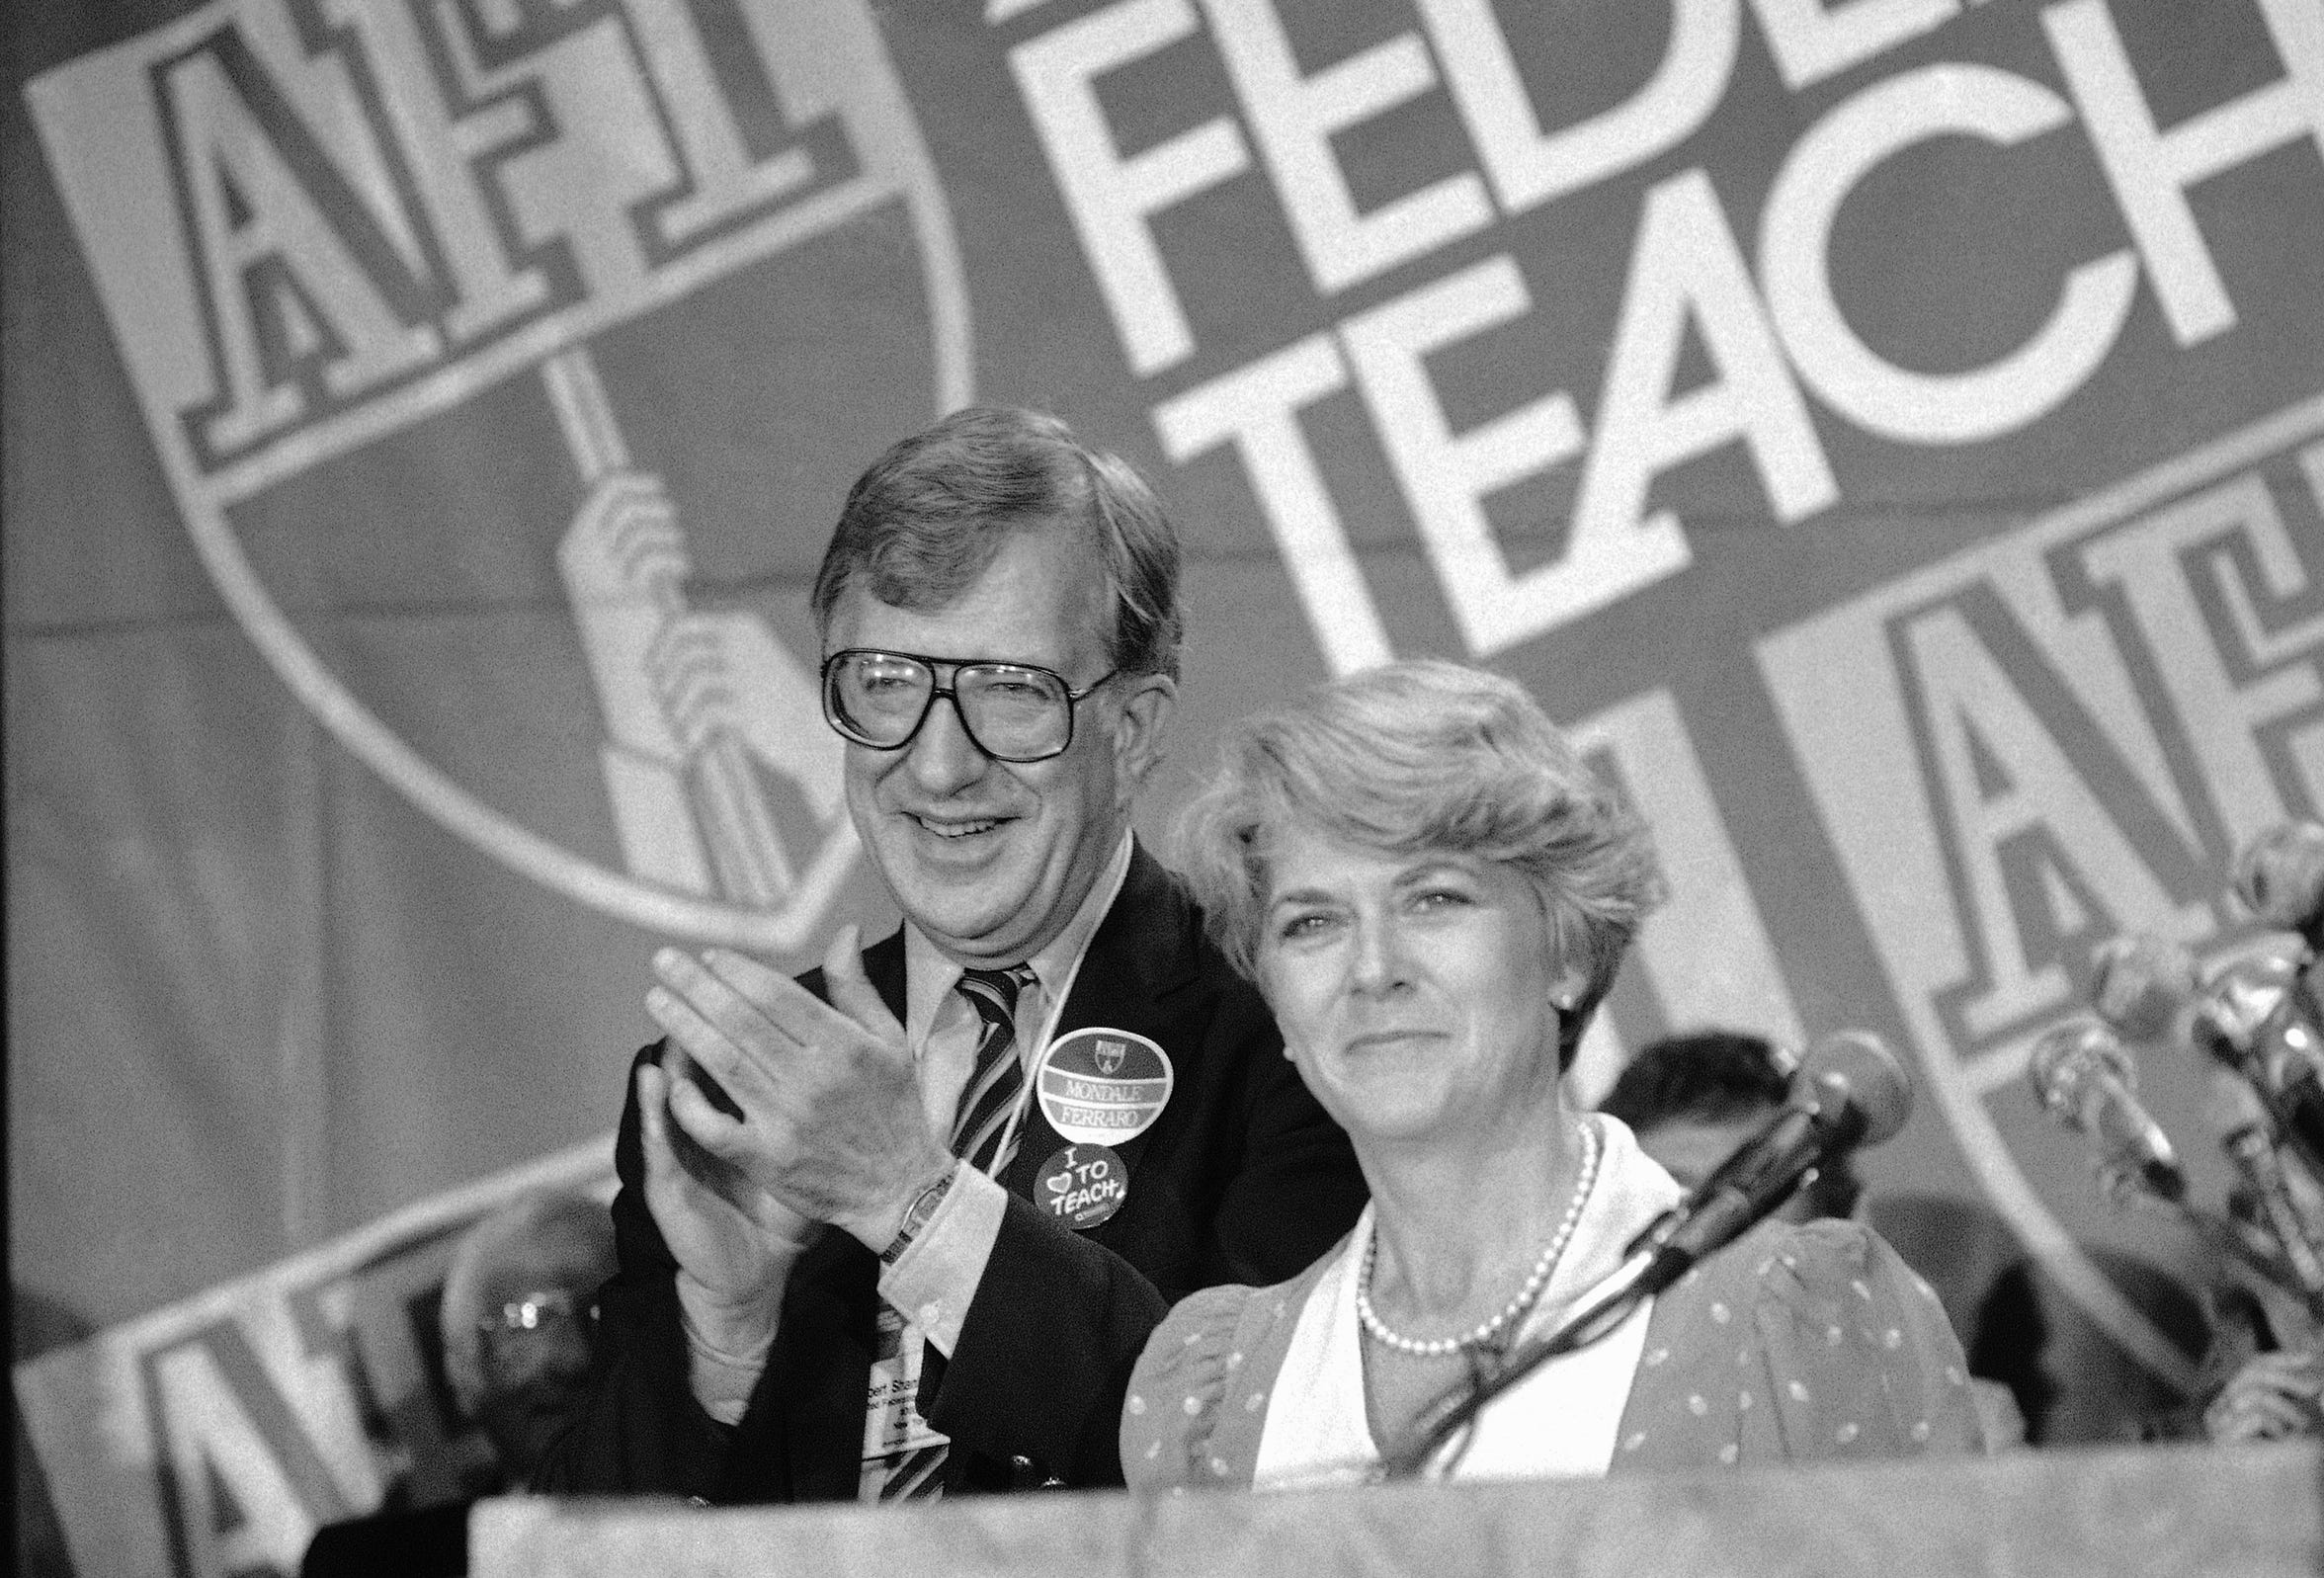 Al Shanker, president of the American Federation of Teachers, appears with Democratic vice presidential nominee Geraldine Ferraro in Washington on Aug. 22, 1984.